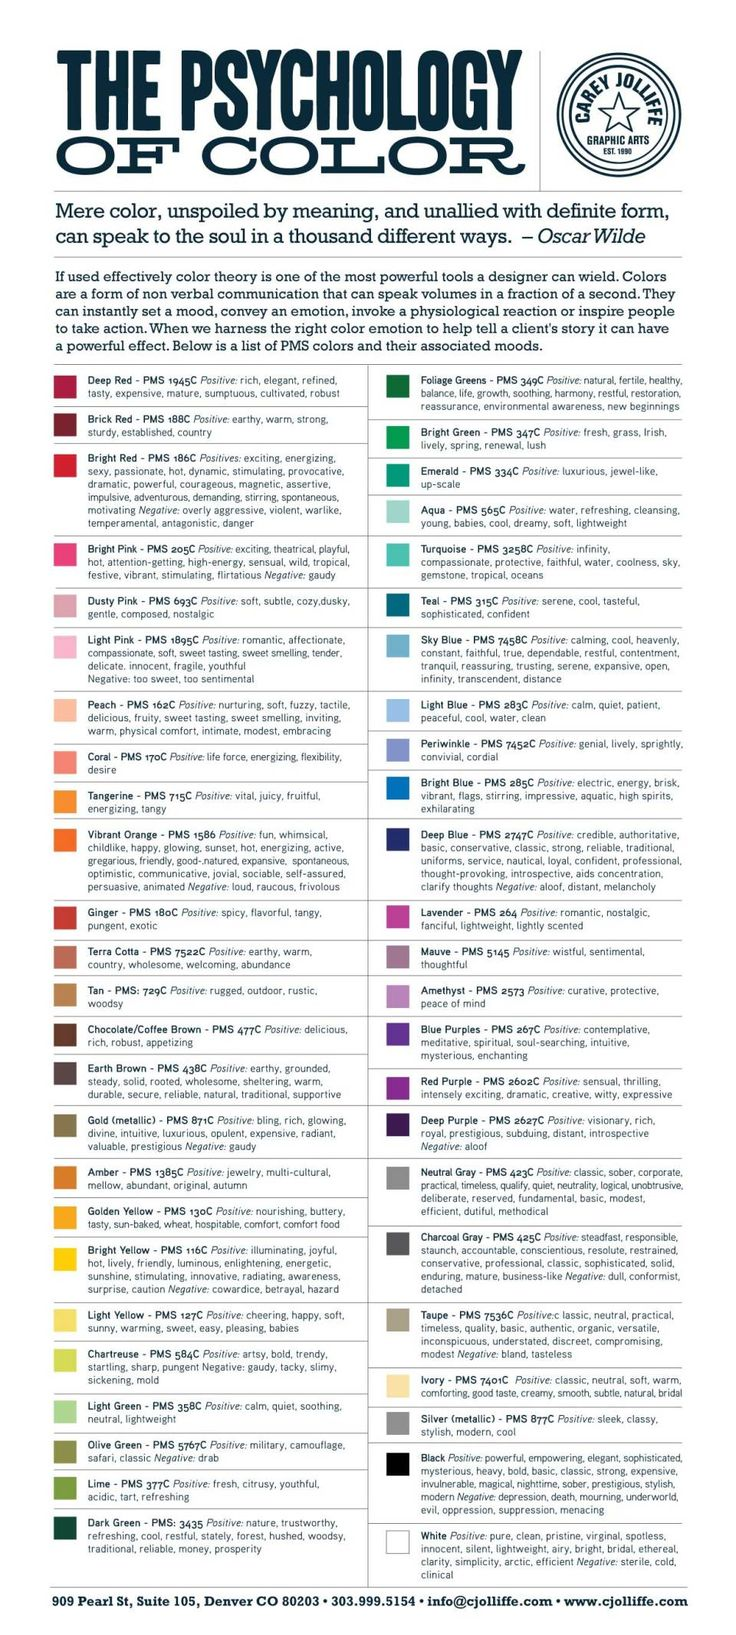 The Fascinating Psychology of Color... Might be helpful when choosing your wedding colors! http://nashville.wedding101.net/